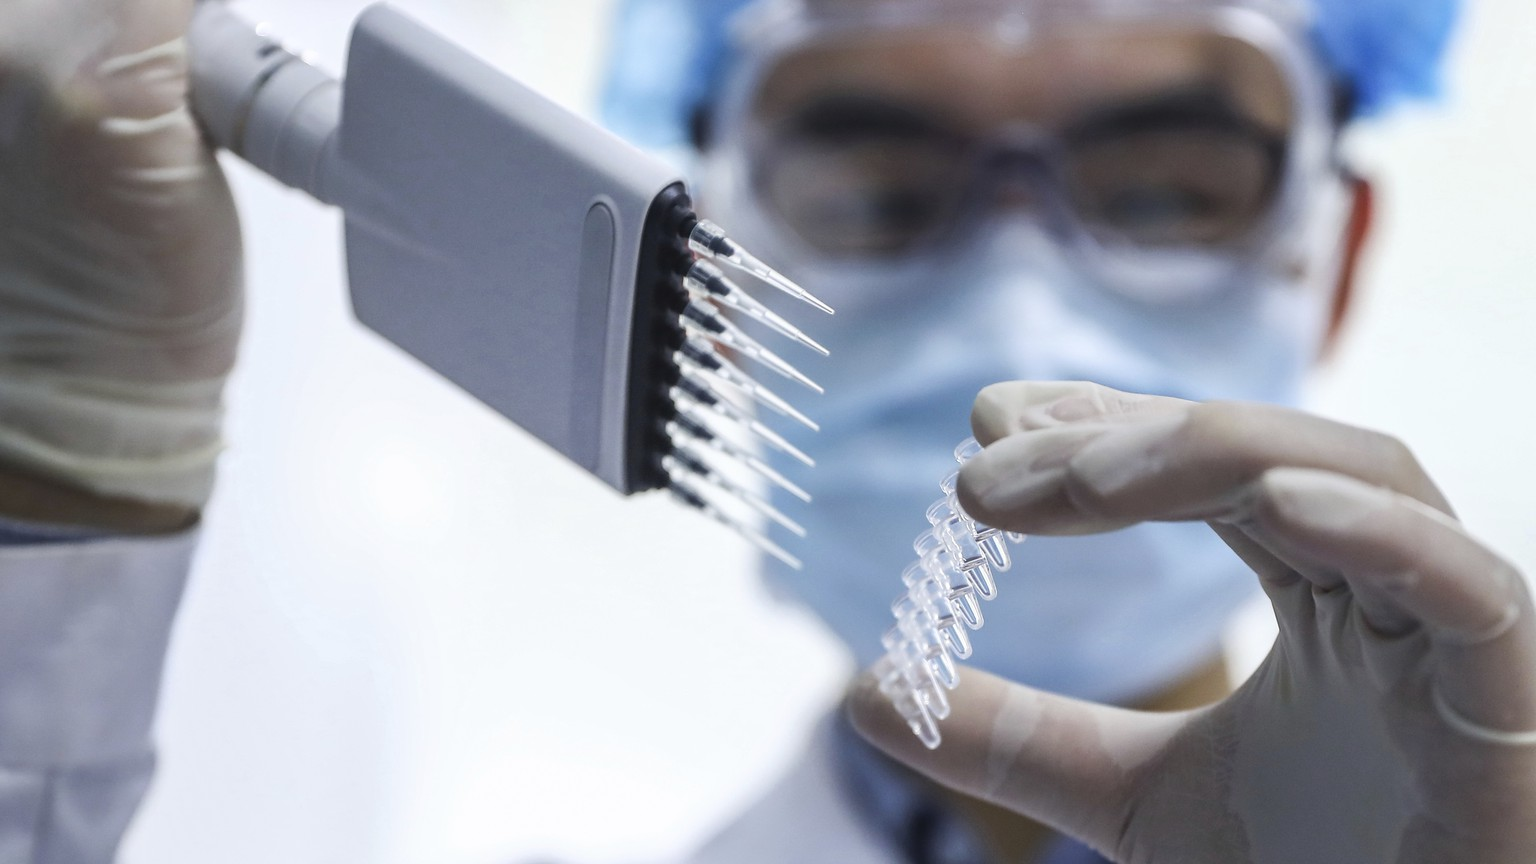 In this April 11, 2020 photo, released by Xinhua News Agency, a staff member tests samples of a potential COVID-19 vaccine at a production plant of SinoPharm in Beijing. In the global race to make a coronavirus vaccine, the state-owned Chinese company is boasting that it gave its employees, including top executives, experimental shots even before the government OK'd testing in people. (Zhang Yuwei/Xinhua via AP)